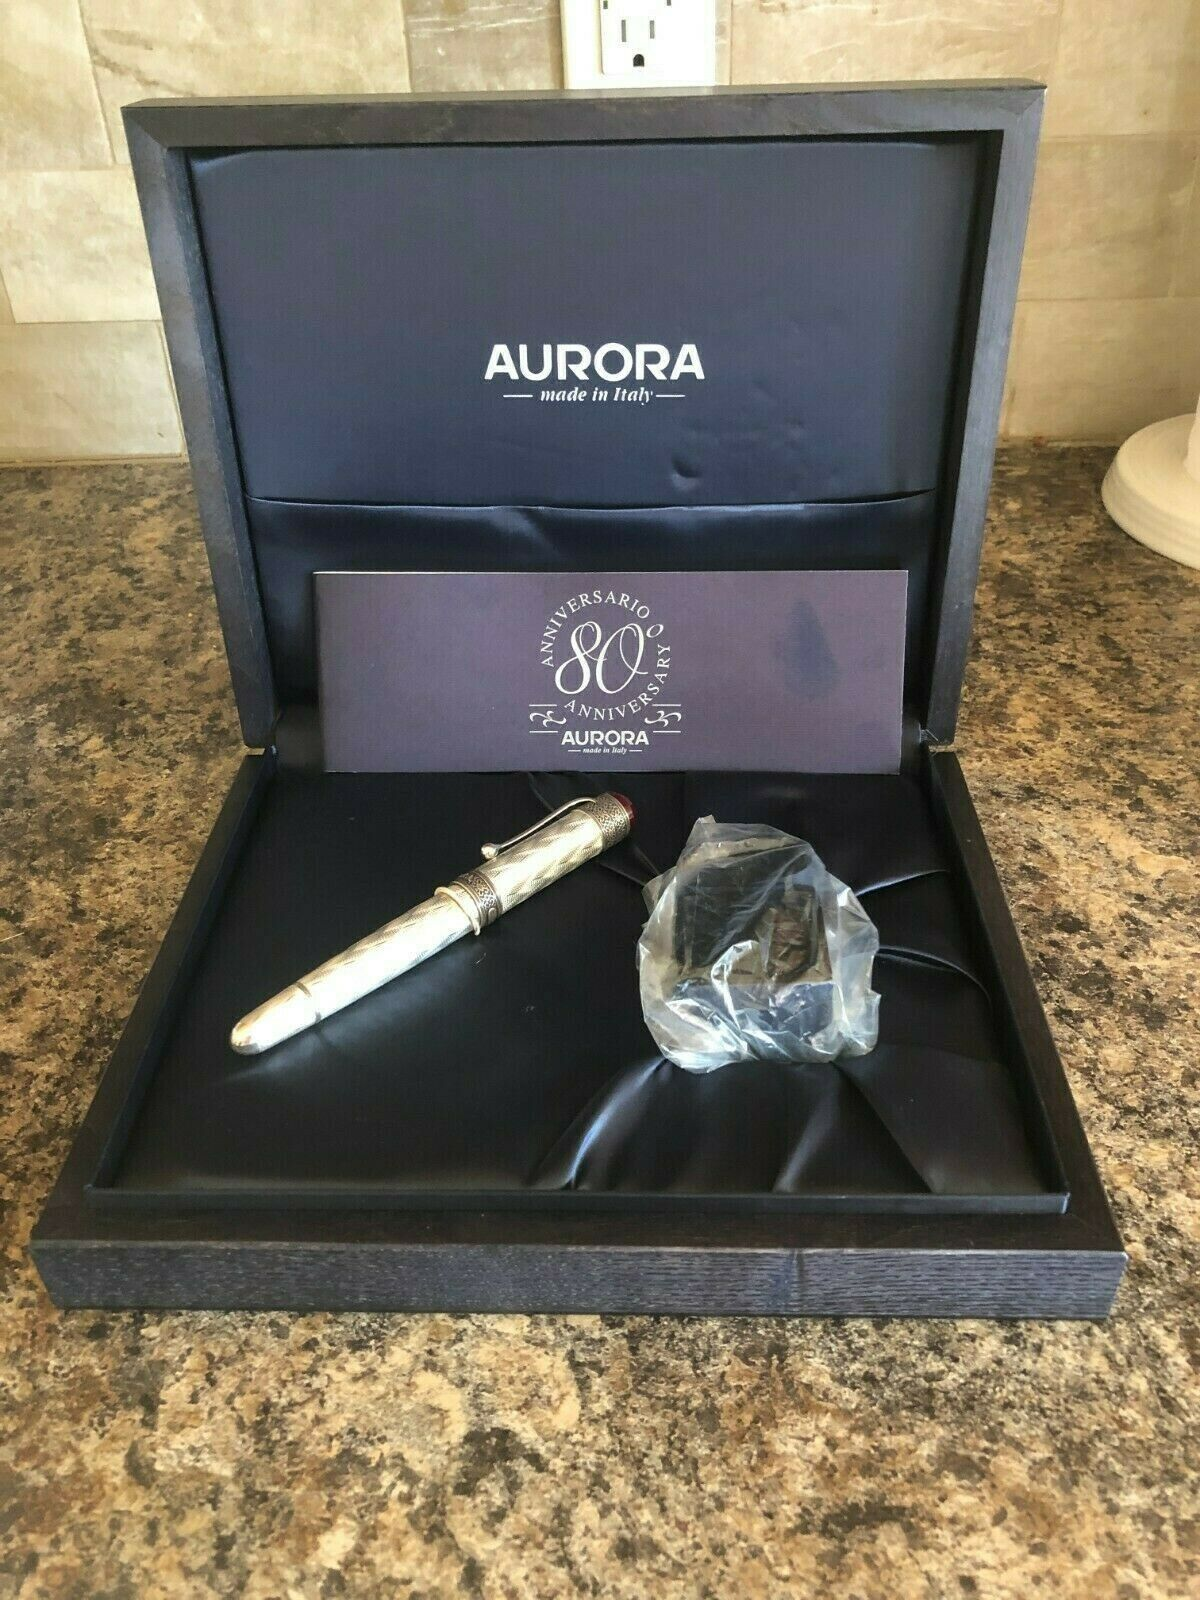 Pre-Owned Pens: : Aurora: AURORA 80TH ANNIVERSARY STERLING SILVER FOUNTAIN PEN MED NIB